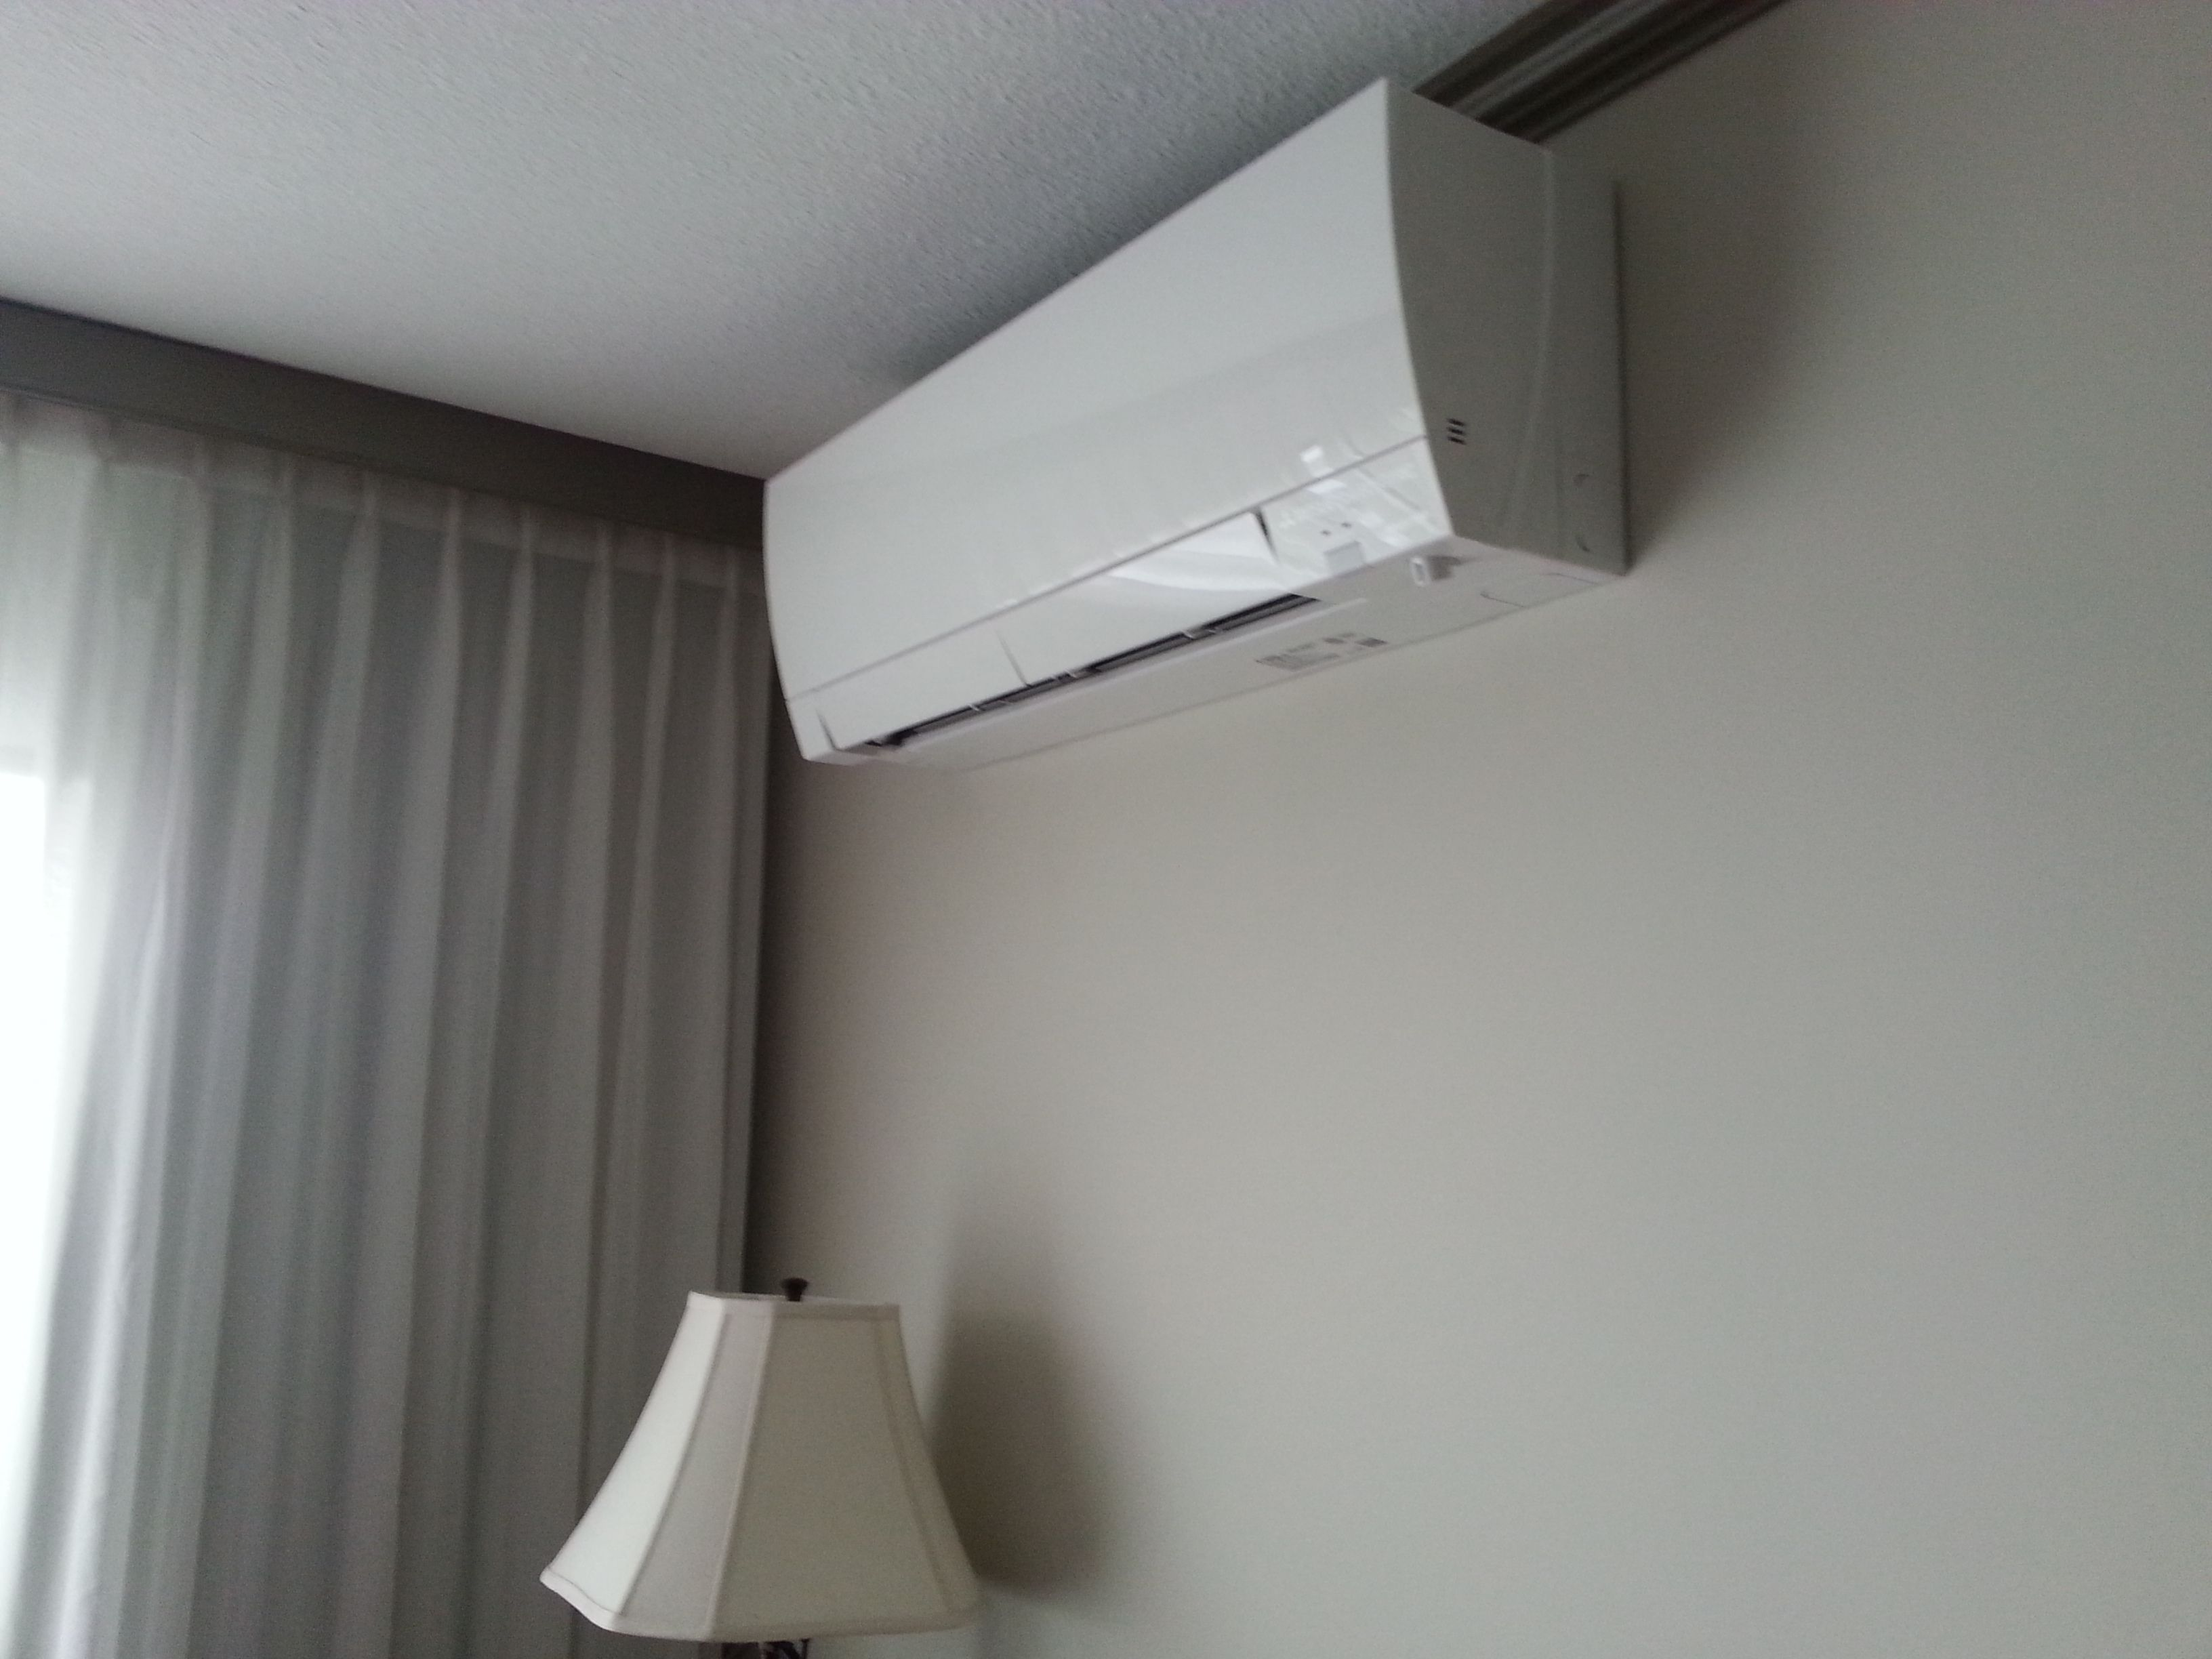 Mitsubishi Hyper Heat Wall Mount In A Guest Room Home